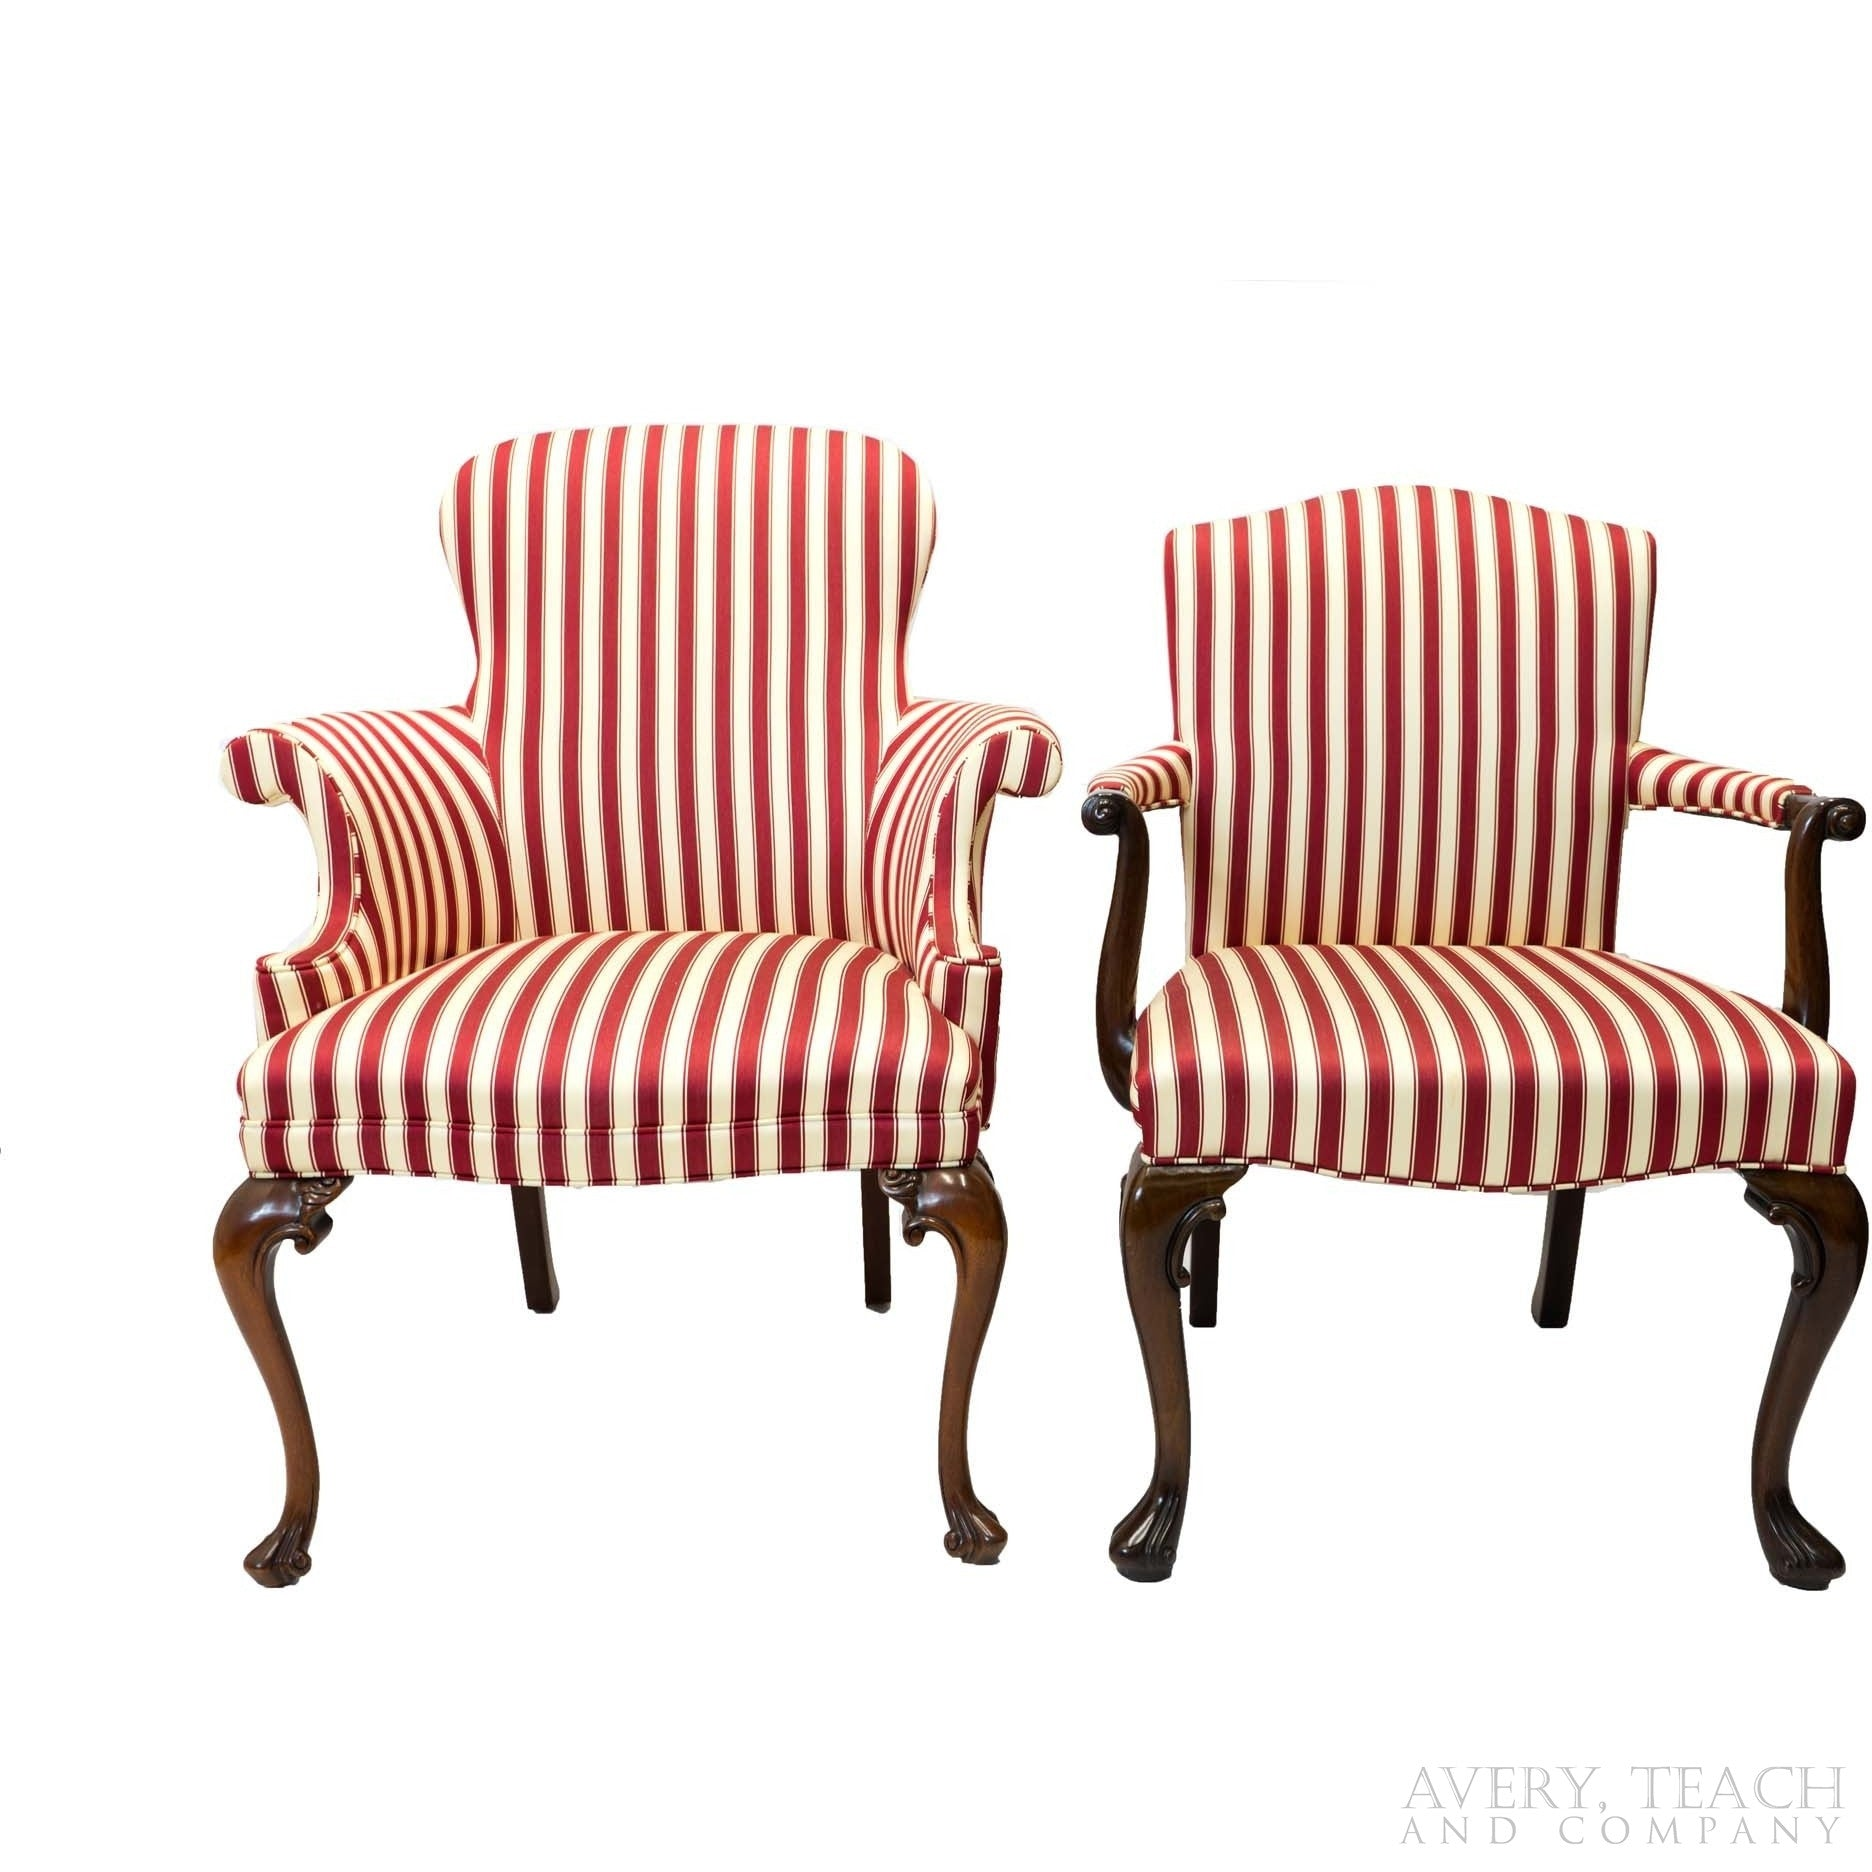 A pair of red and white striped parlor chairs with cabriole legs, the right one with an open arm style.